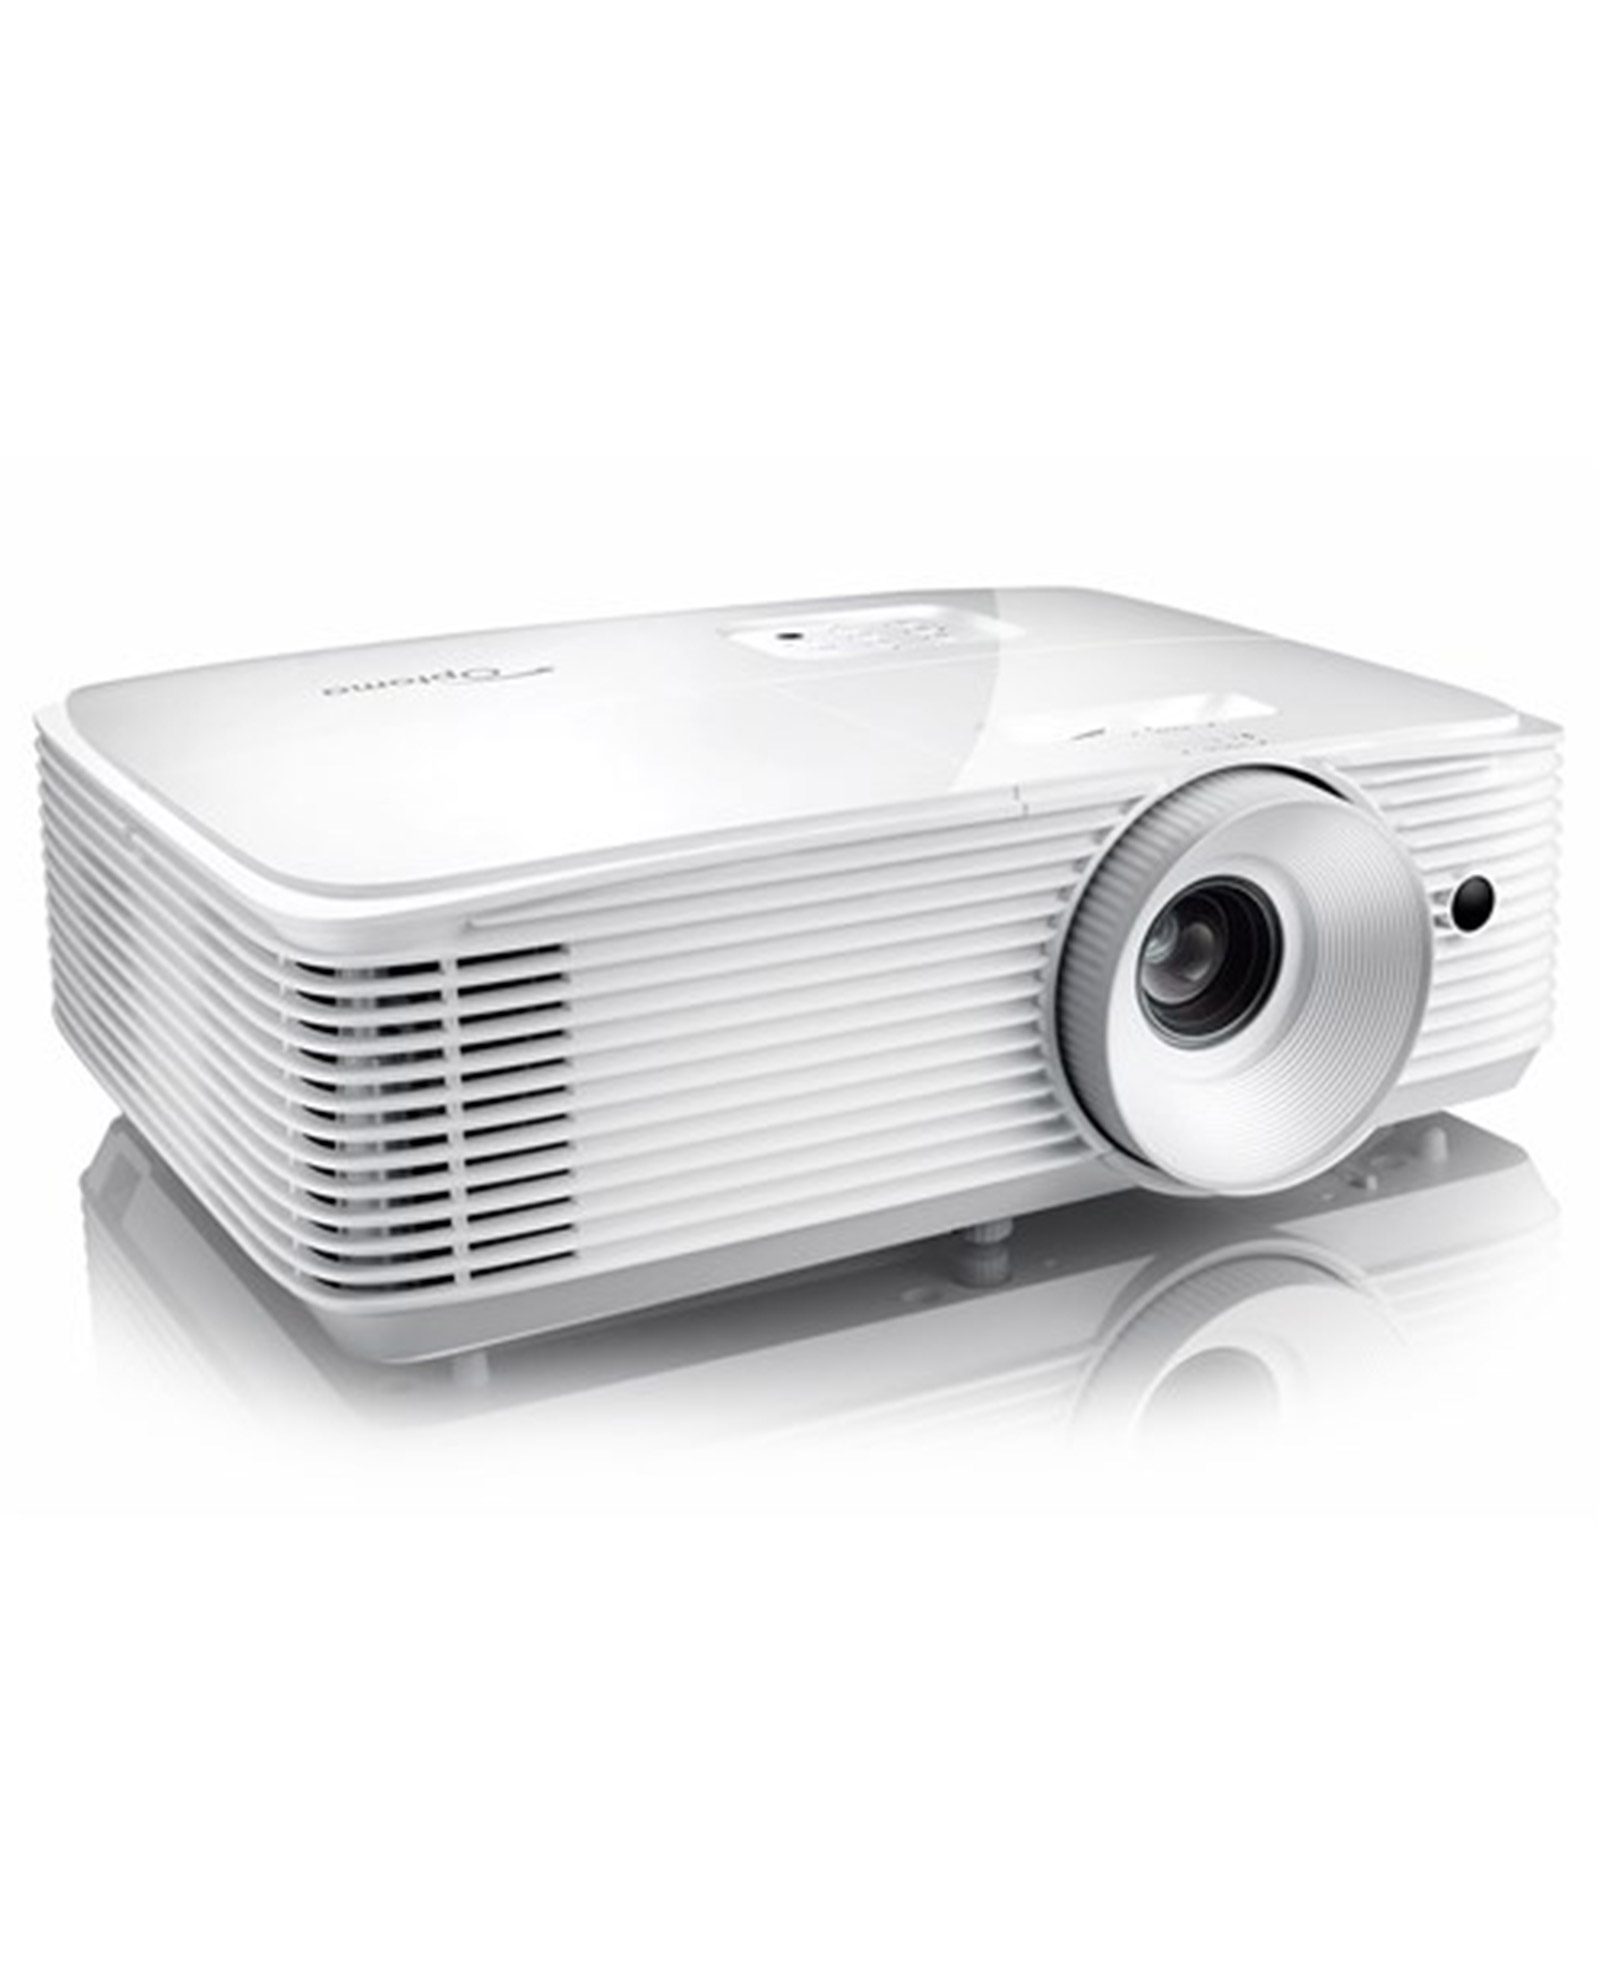 Optoma Hd30hdr 3800lm 1080p 50000 1 Home Theatre Projector 4